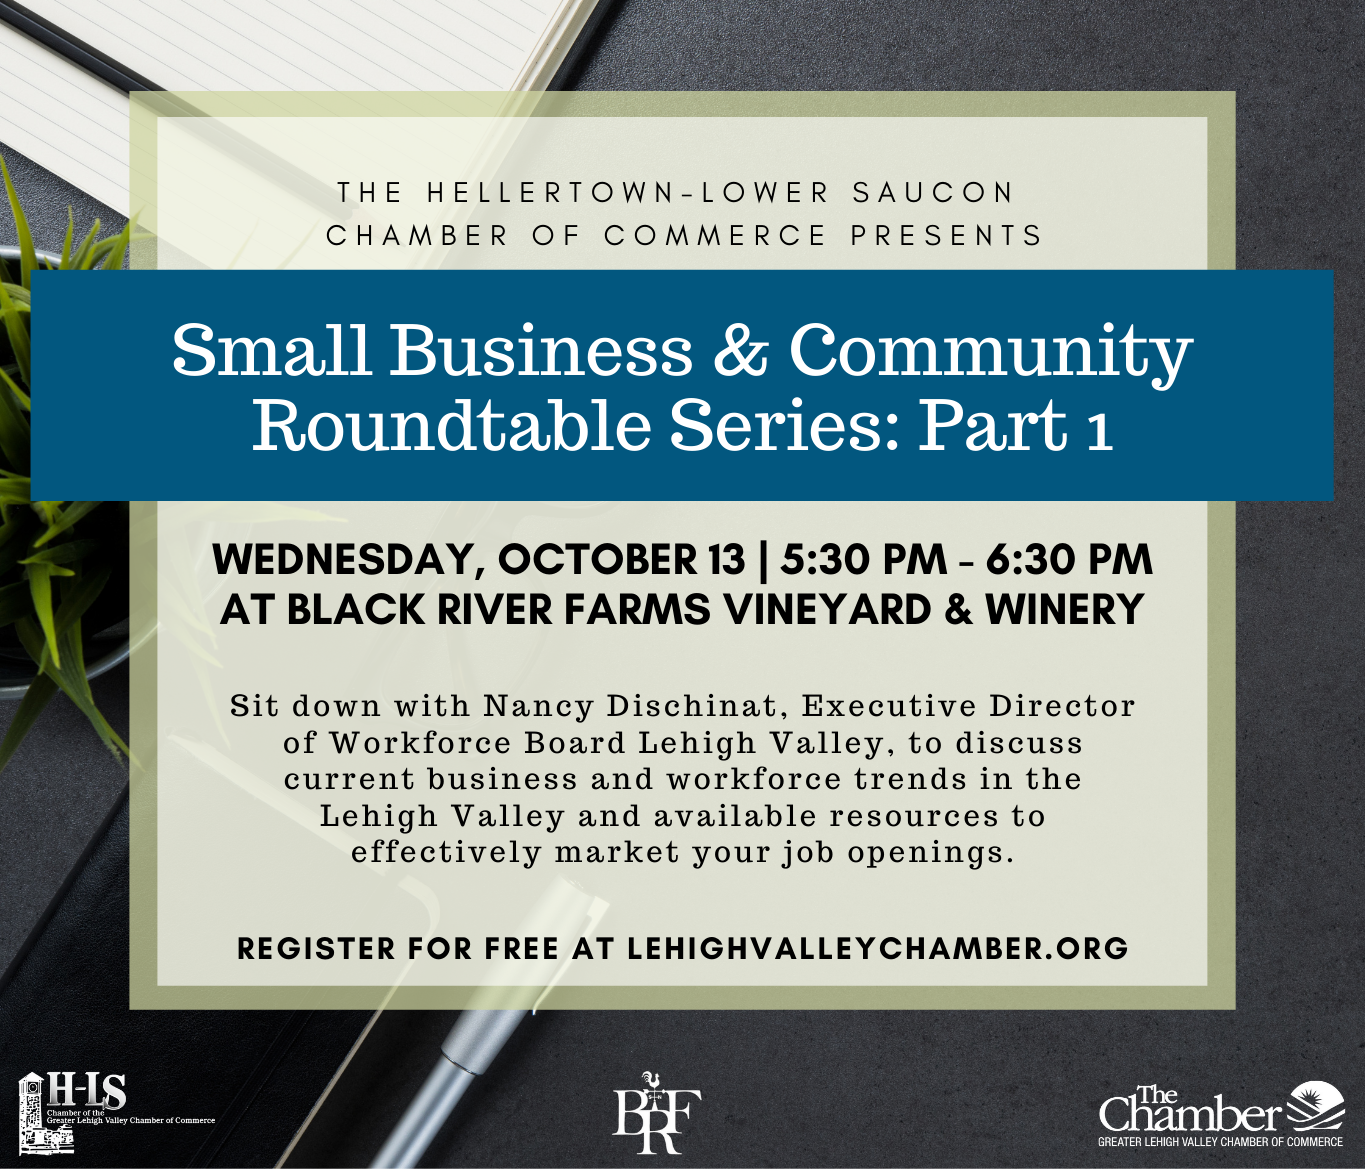 Chamber business roundtable